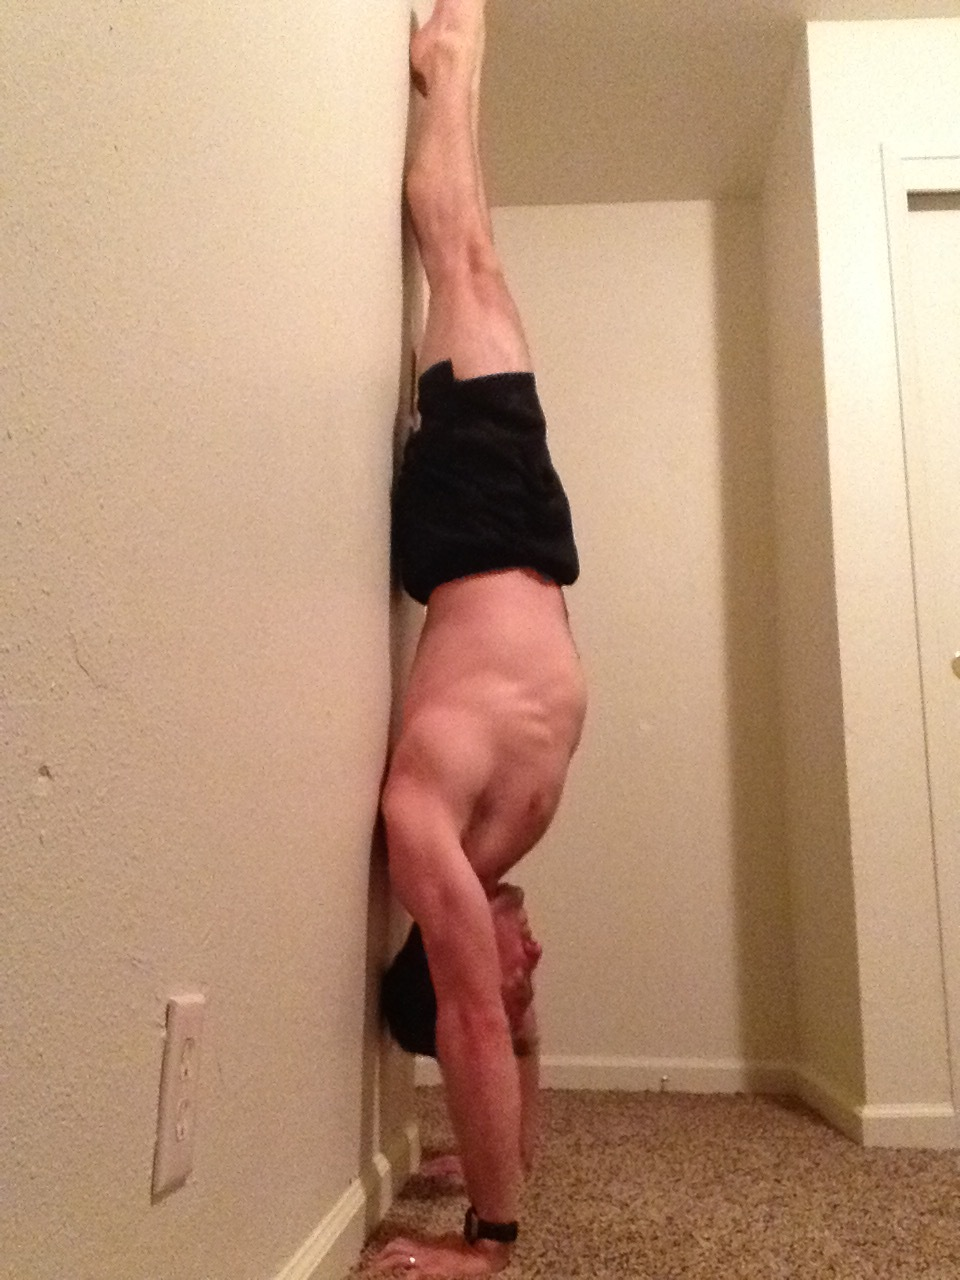 Where I'm at today!  Using a wall is great for getting that straight handstand.